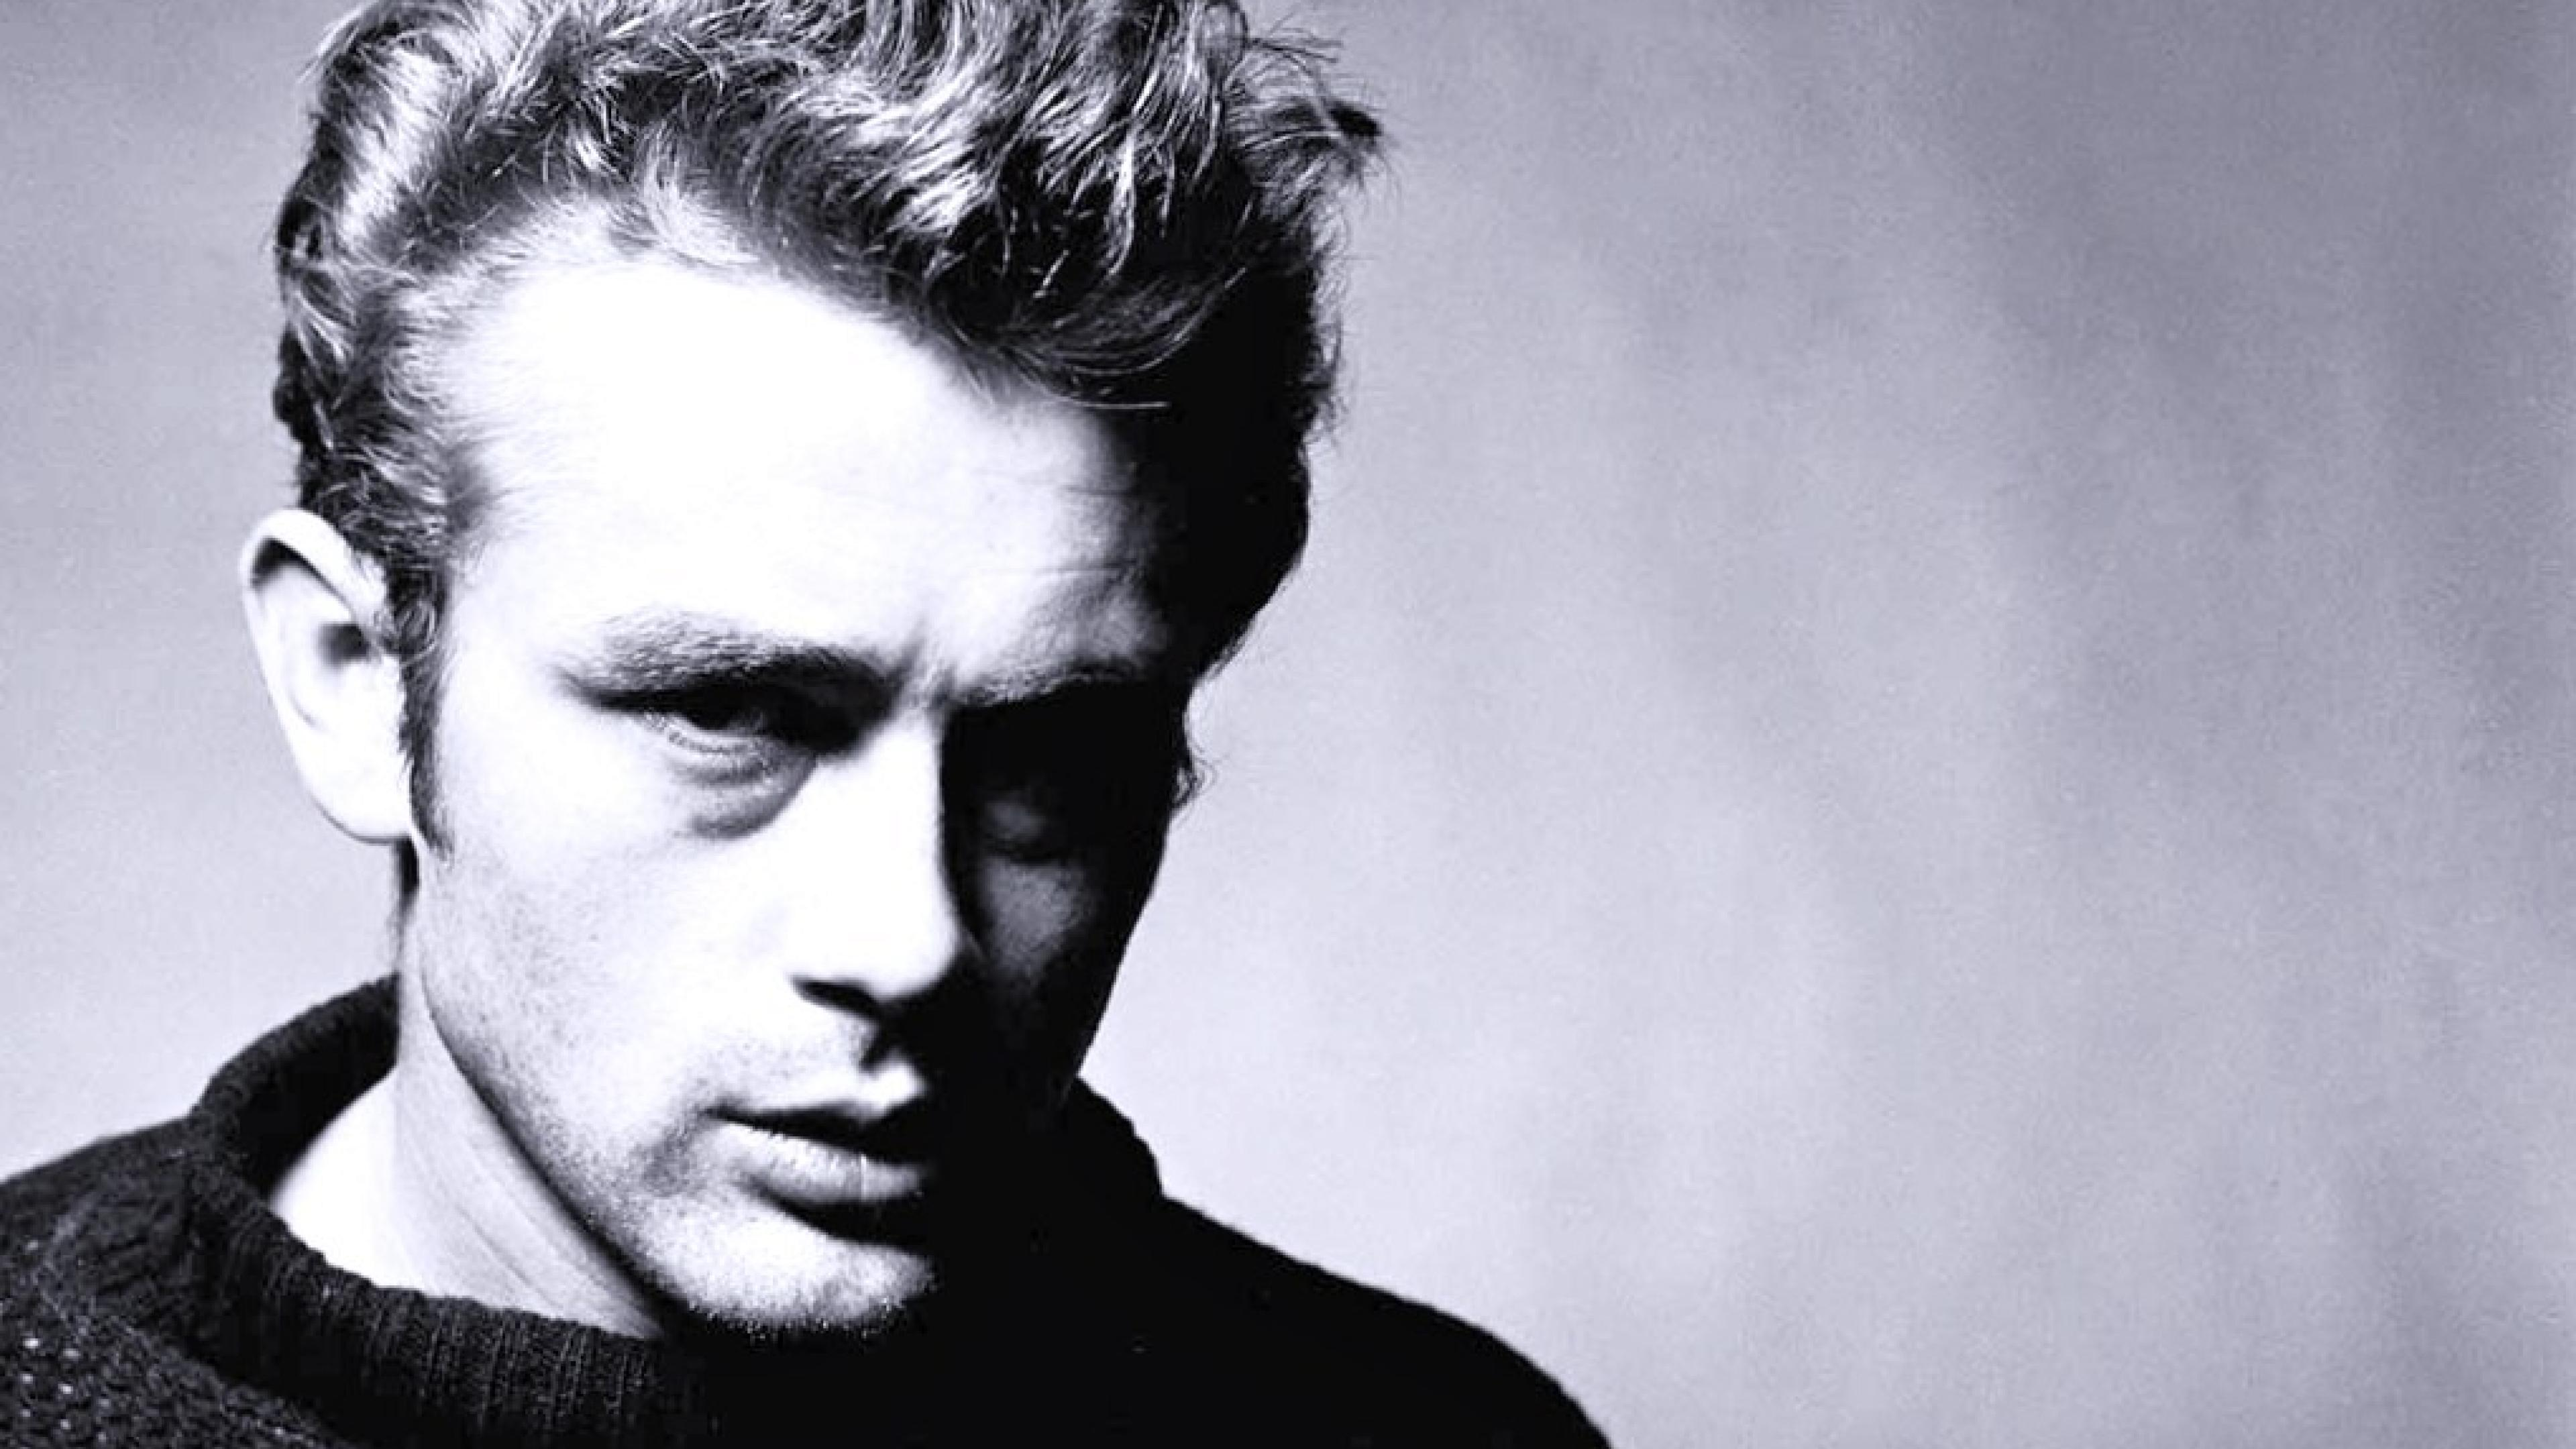 James Dean HD Wallpapers | 7wallpapers.net